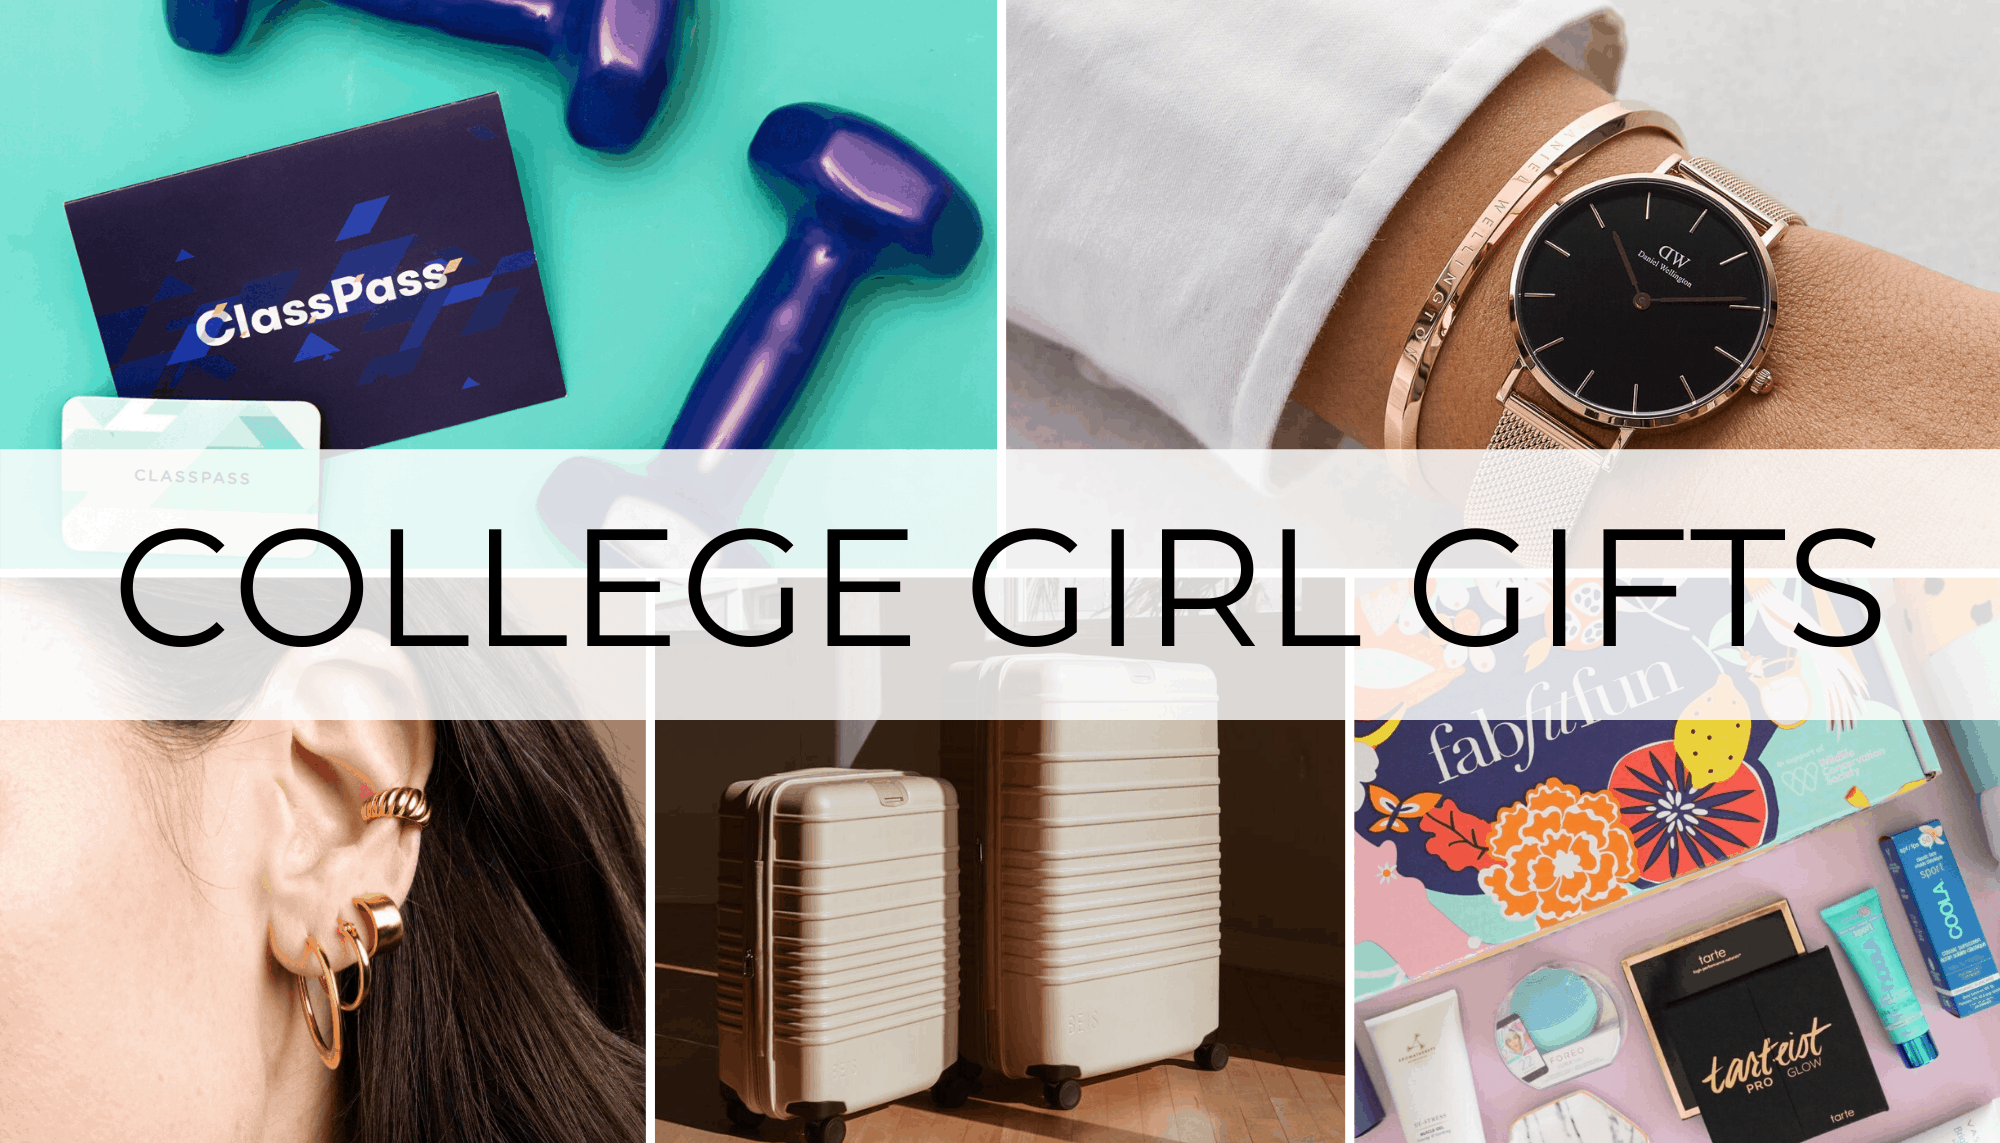 College Girl Gifts